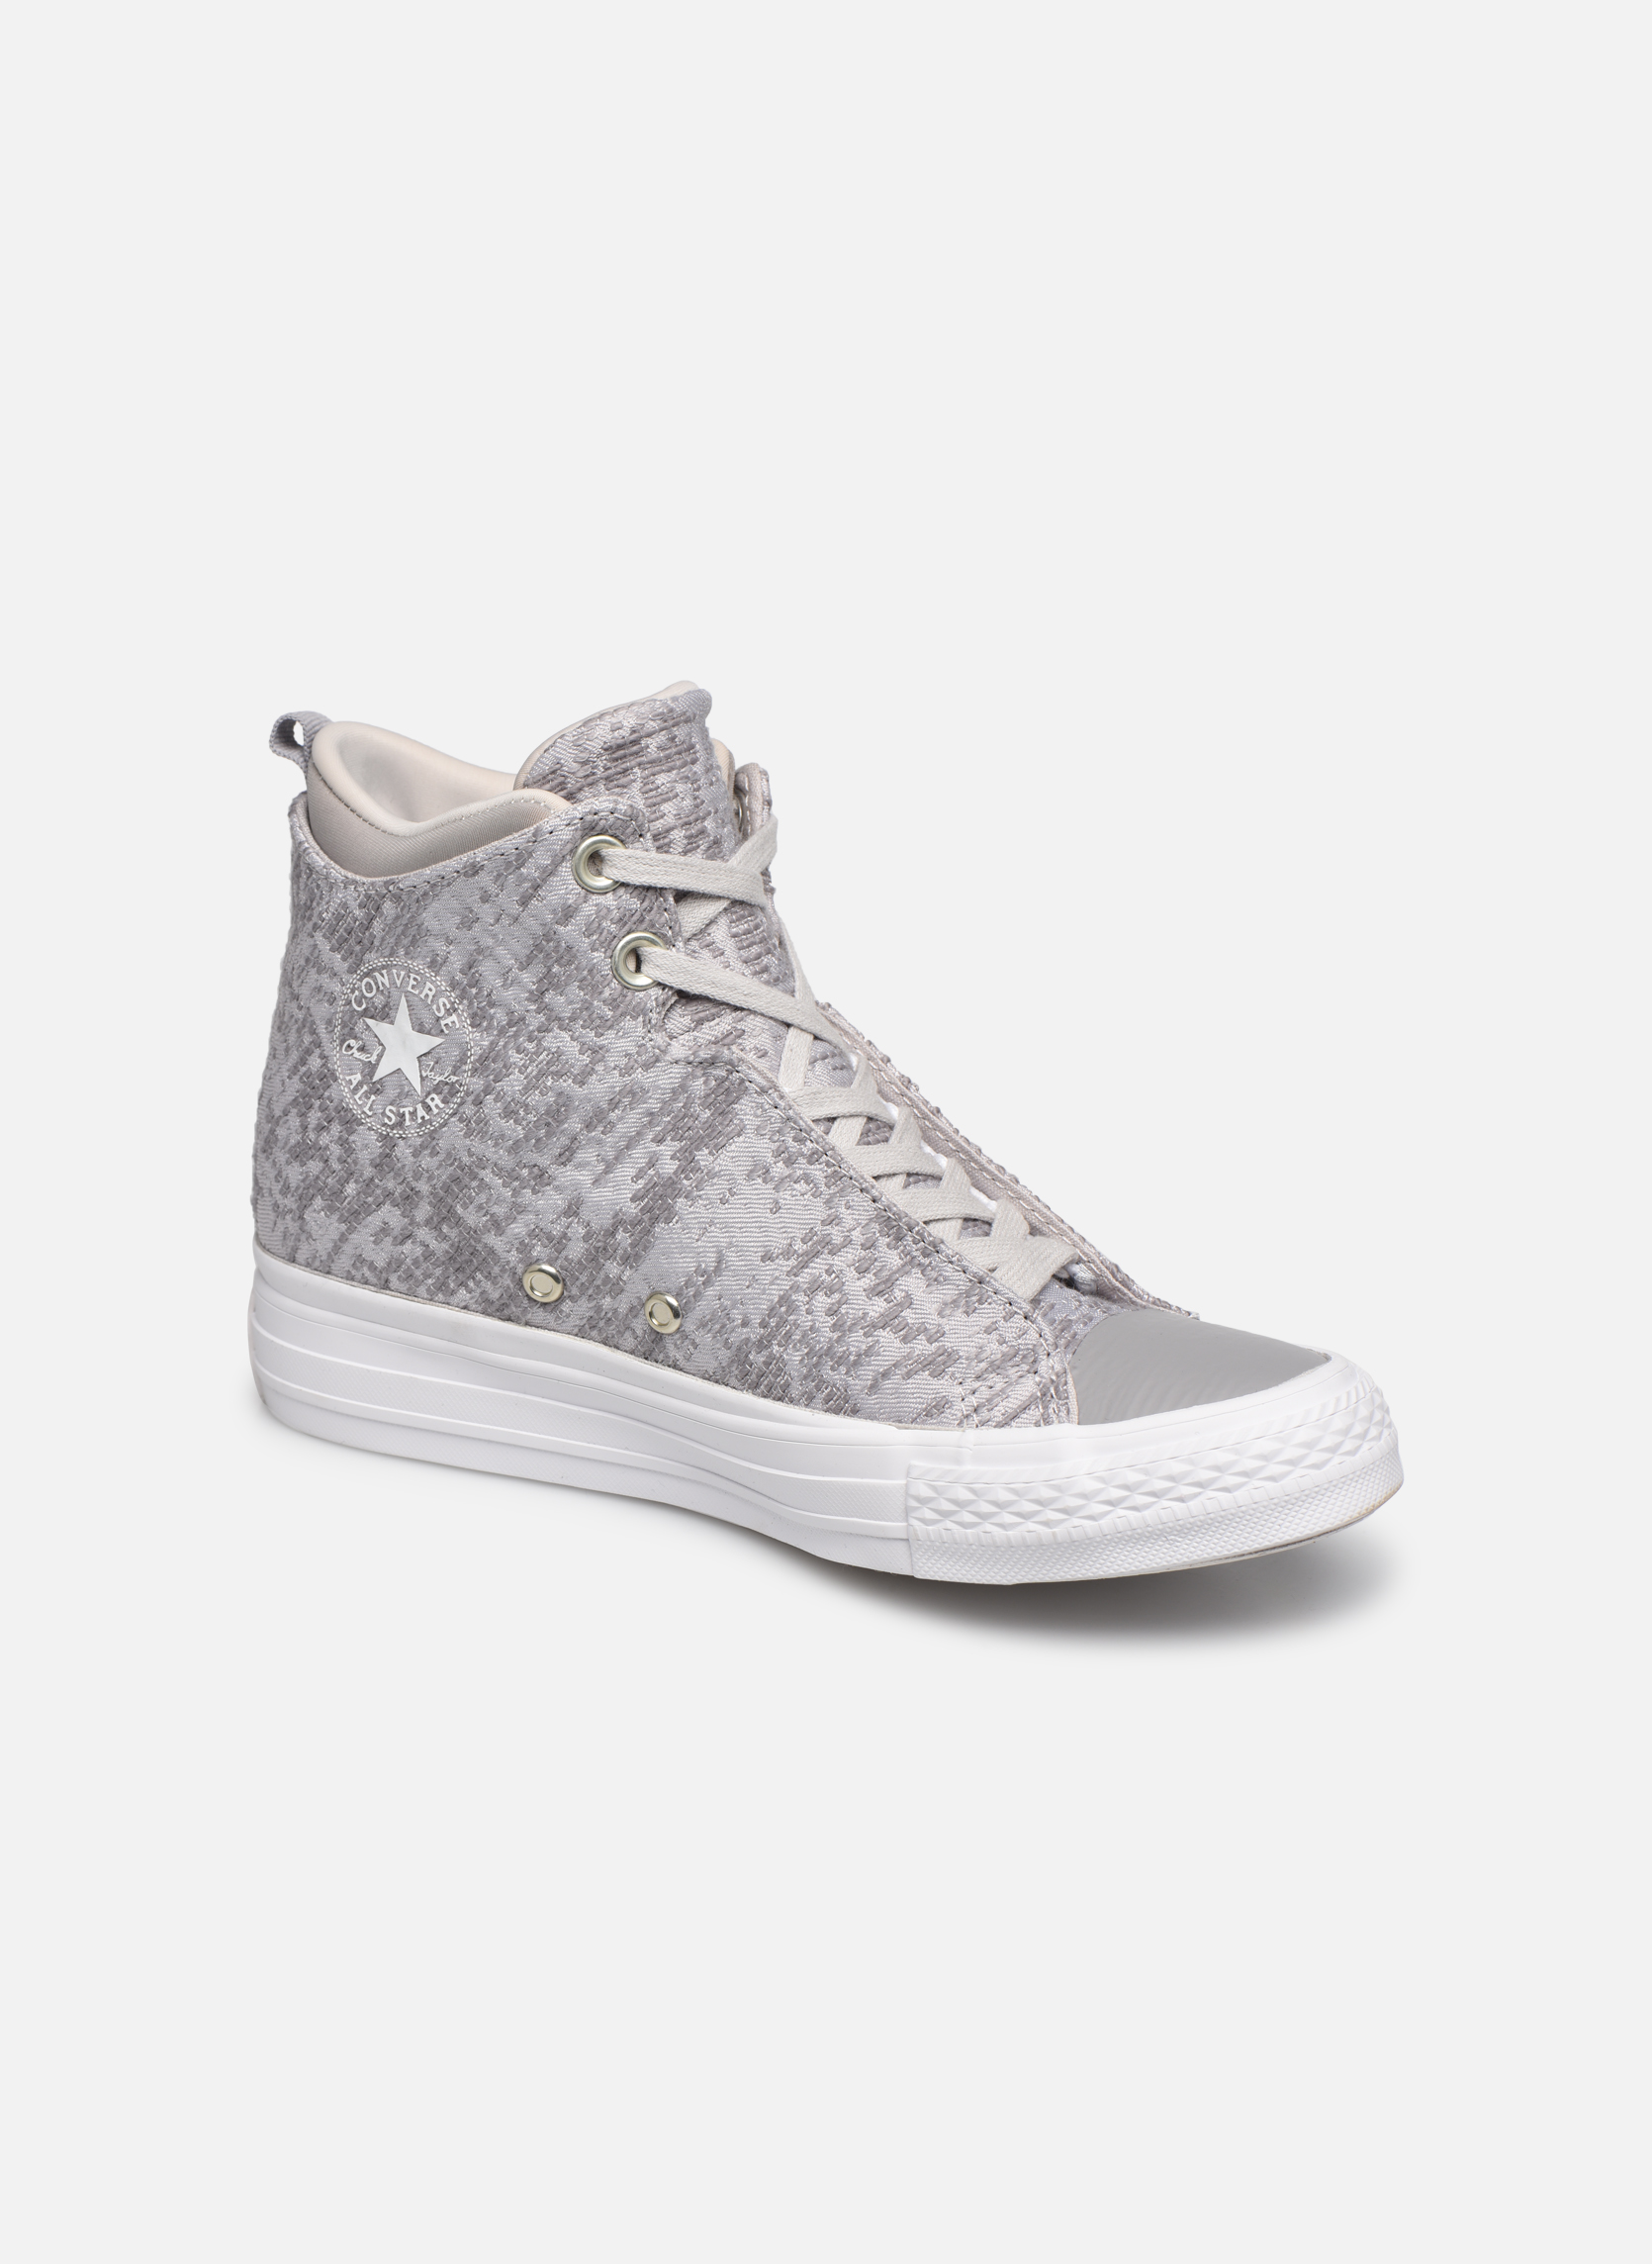 Ctas Selene Winter Knit Mid by Converse